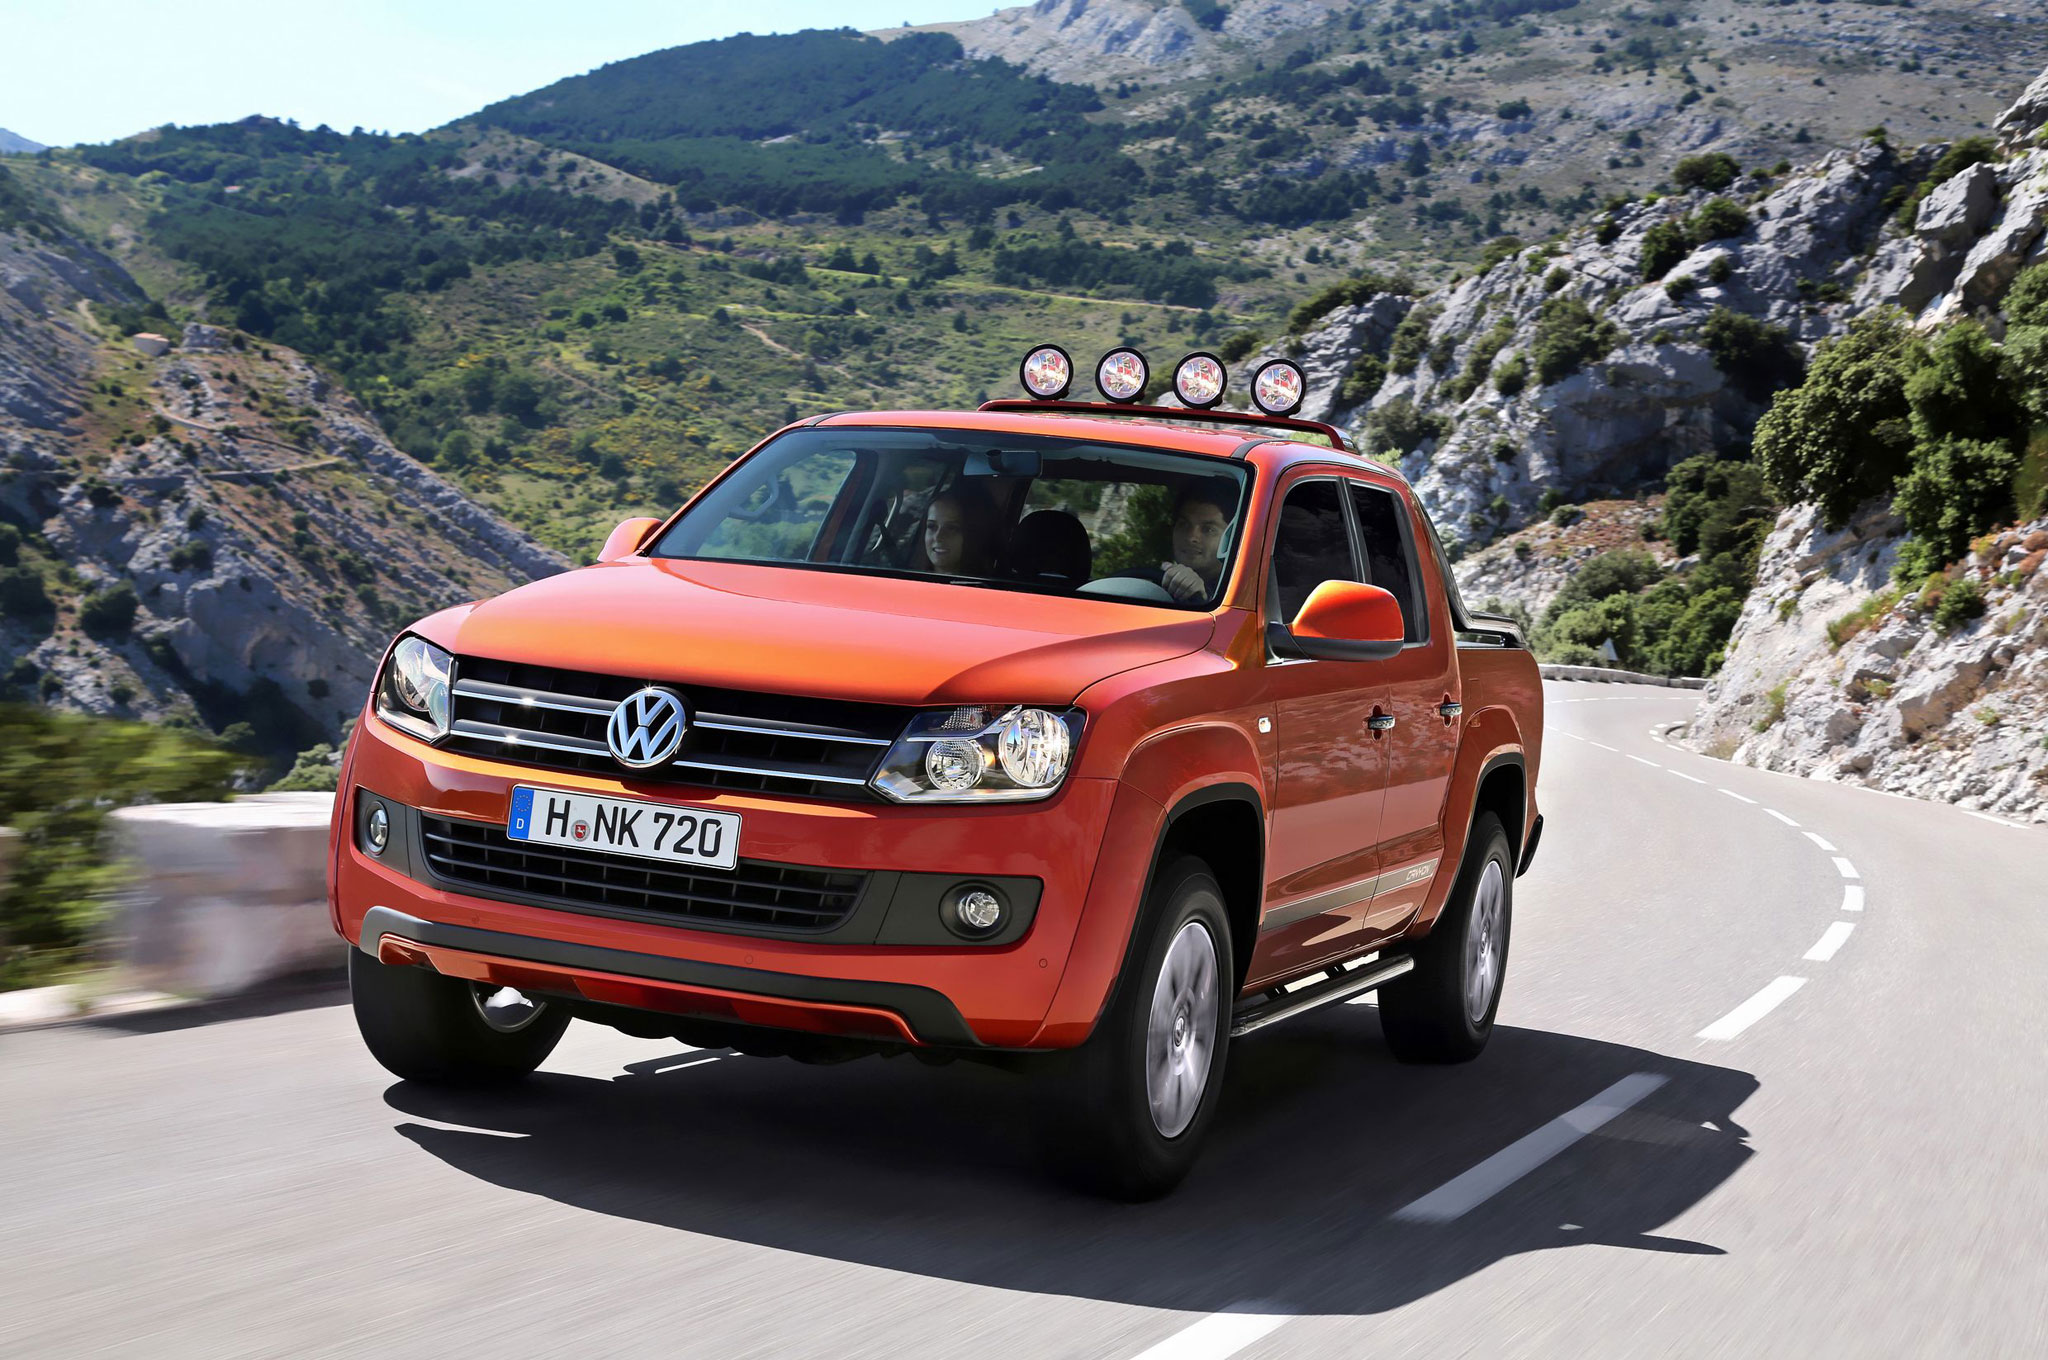 2014 Volkswagen Amarok Canyon Front Three Quarter View In Motion 1